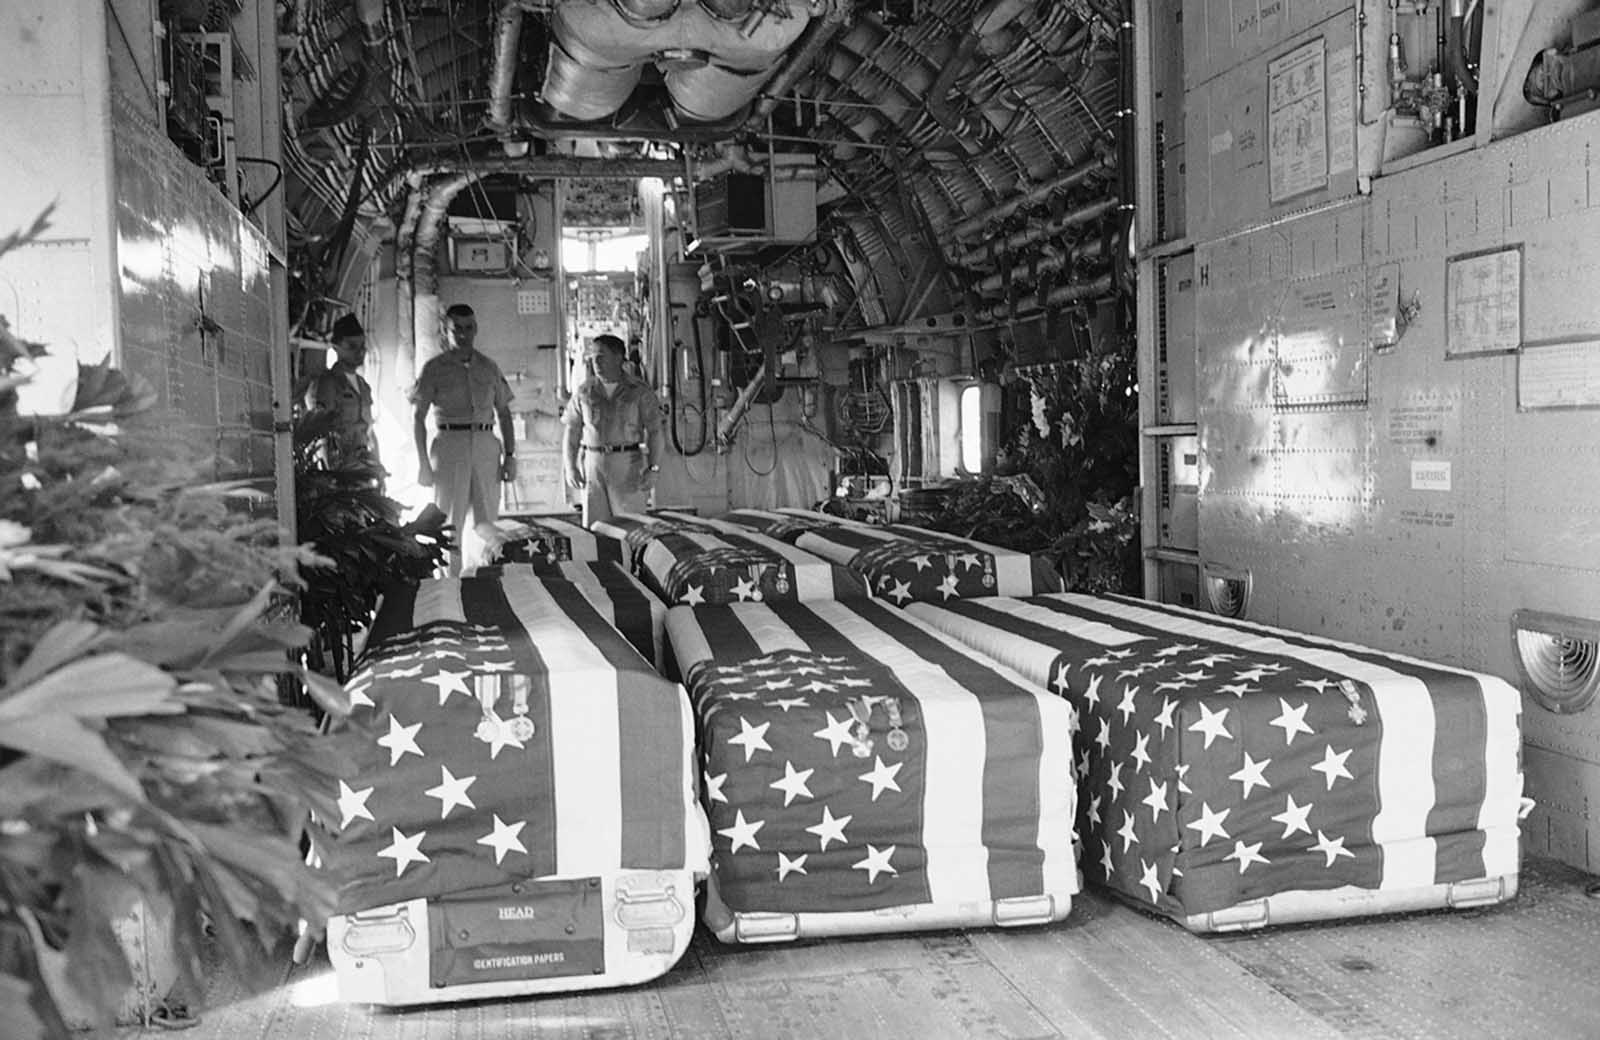 Flag-draped coffins of eight American Servicemen killed in attacks on U.S. military installations in South Vietnam, on February 7, are placed in transport plane at Saigon, February 9, 1965, for return flight to the United States. Funeral services were held at the Saigon Airport with U.S. Ambassador Maxwell D. Taylor and Vietnamese officials attending.